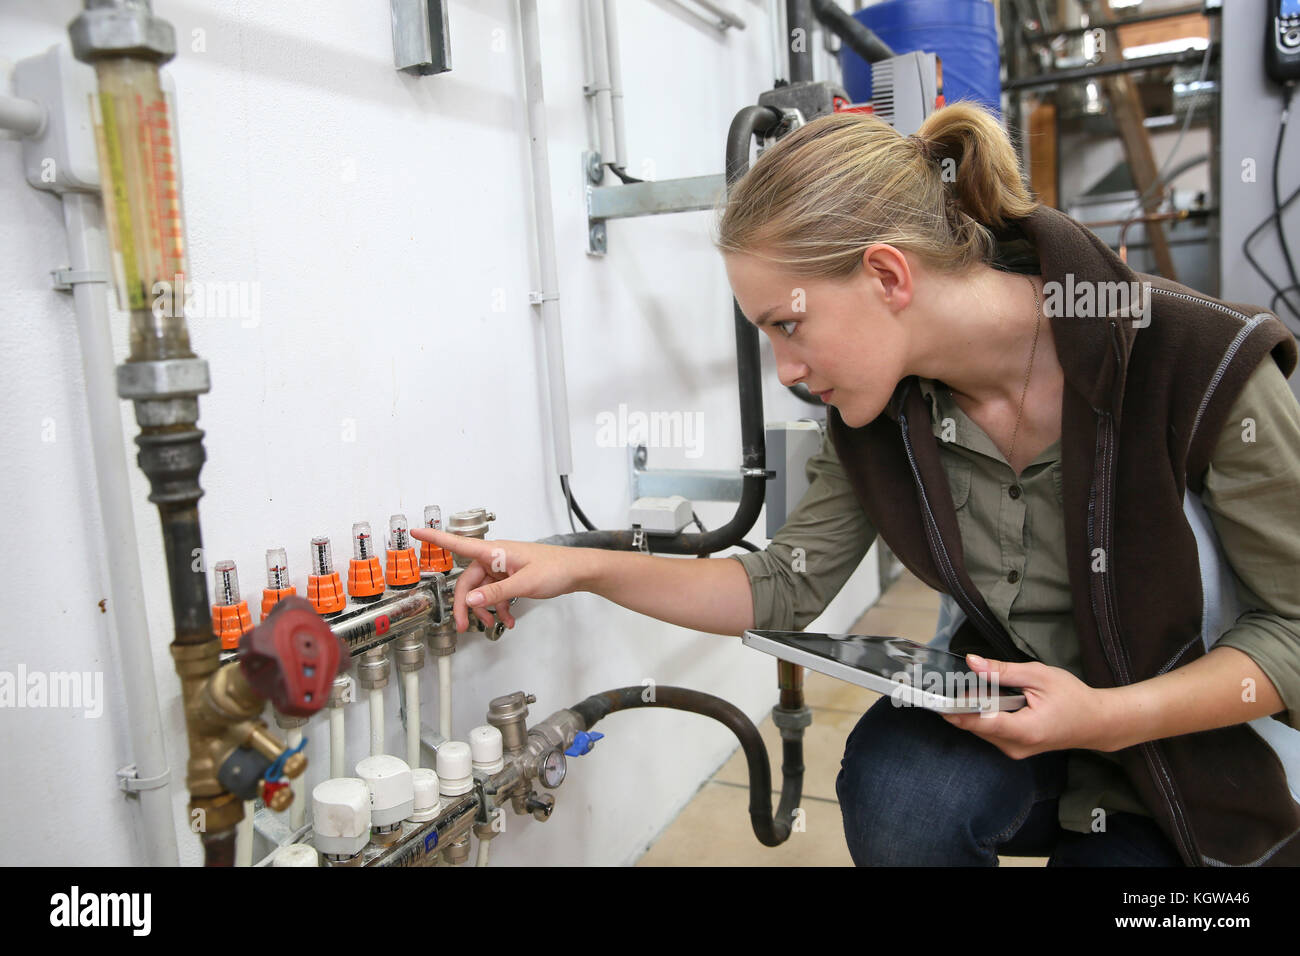 Young woman controlling water level in machinery - Stock Image